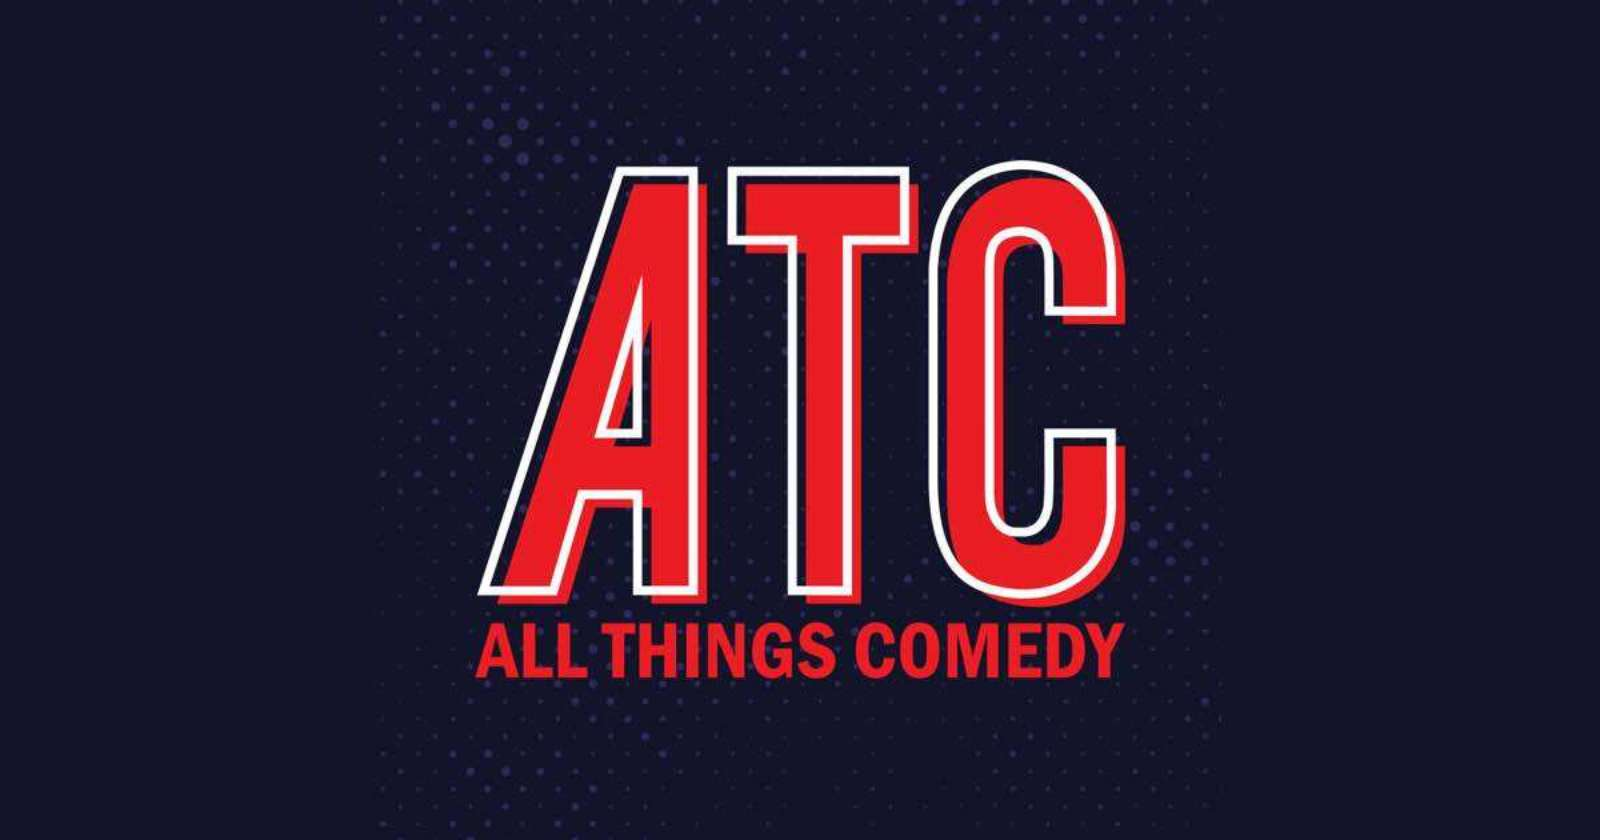 Every Podcast Produced by All Things Comedy